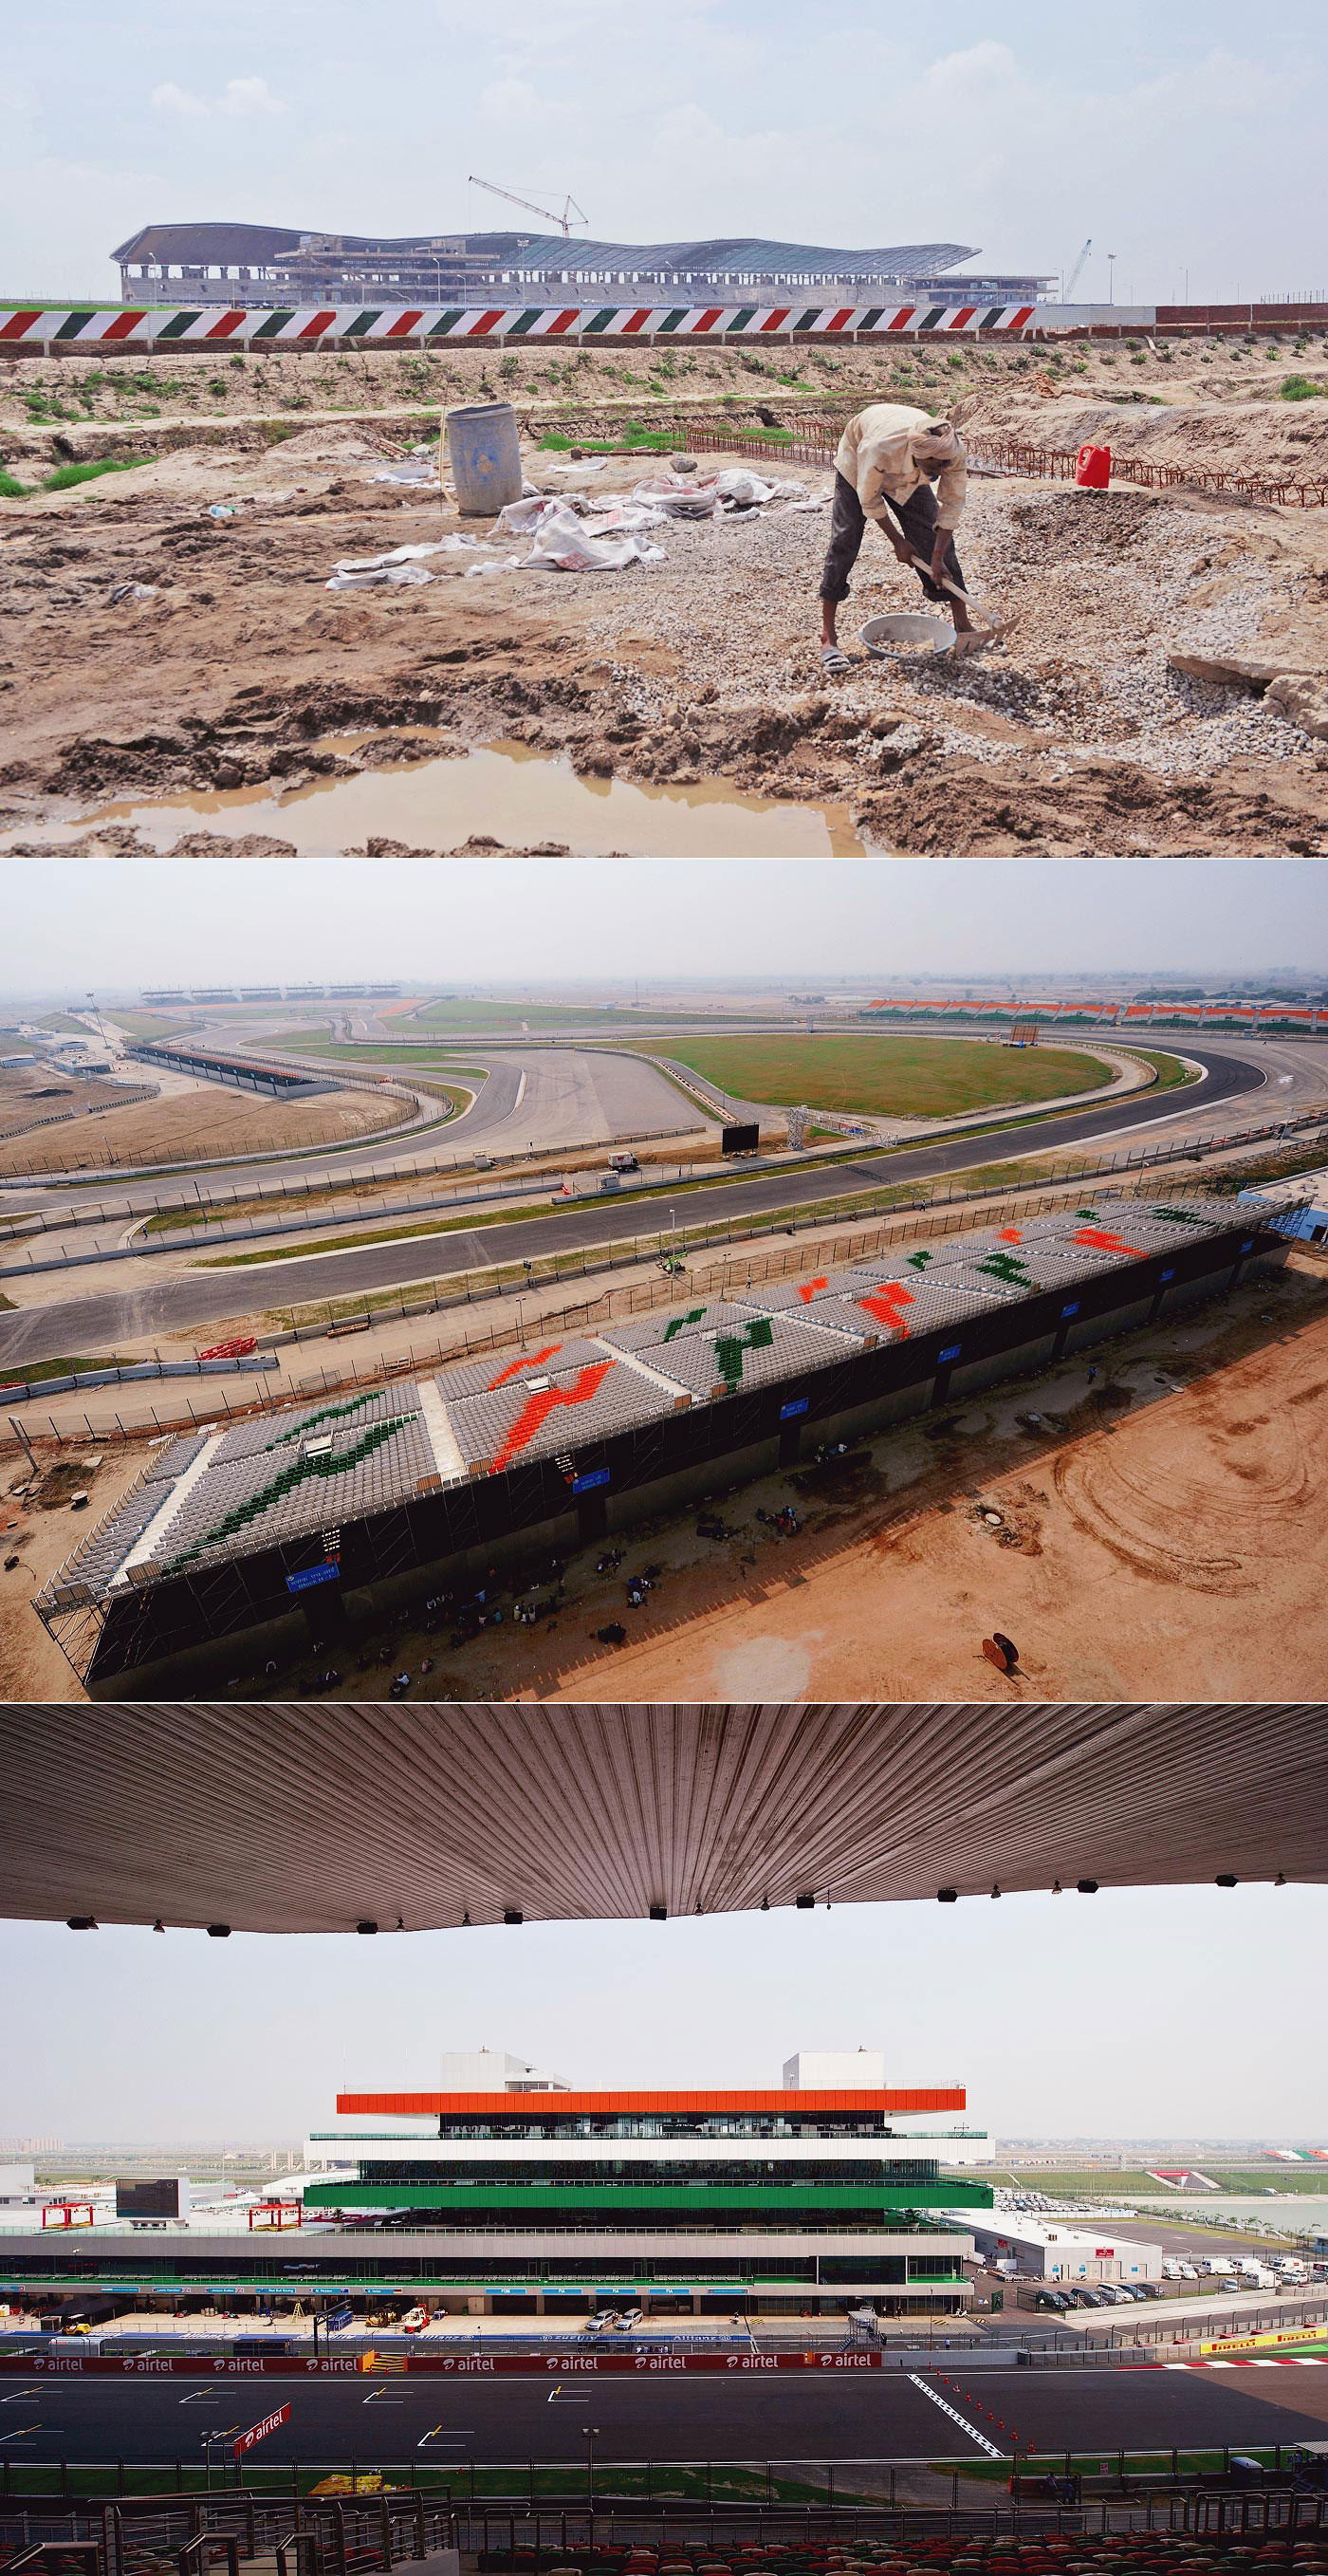 If you build it, they will come (before the tax authorities put a spoke in the wheel): the Buddh International Circuit as it came into being outside New Delhi